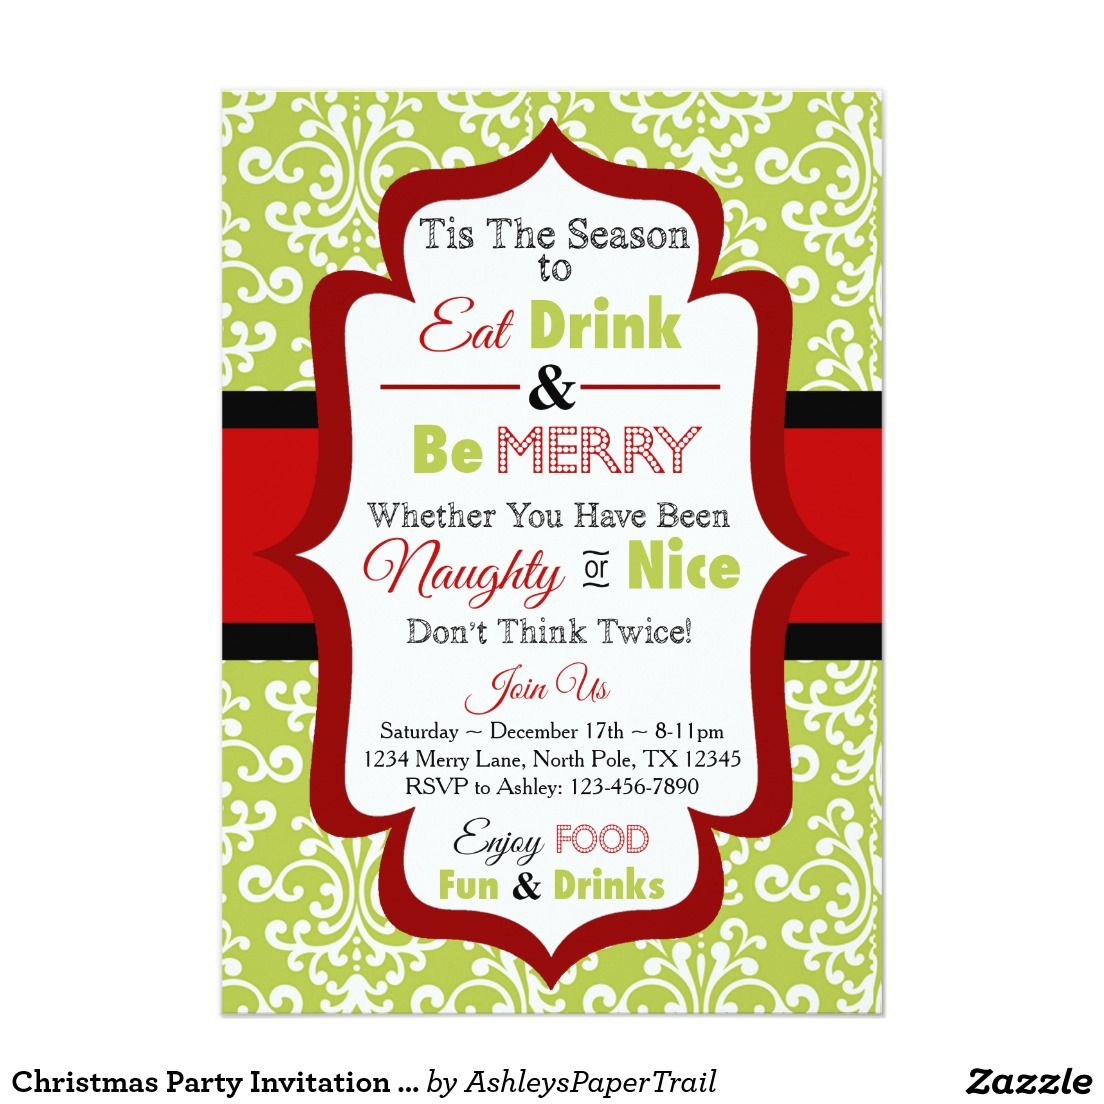 Christmas party invitation eat drink be merry party christmas party invitation eat drink be merry monicamarmolfo Image collections